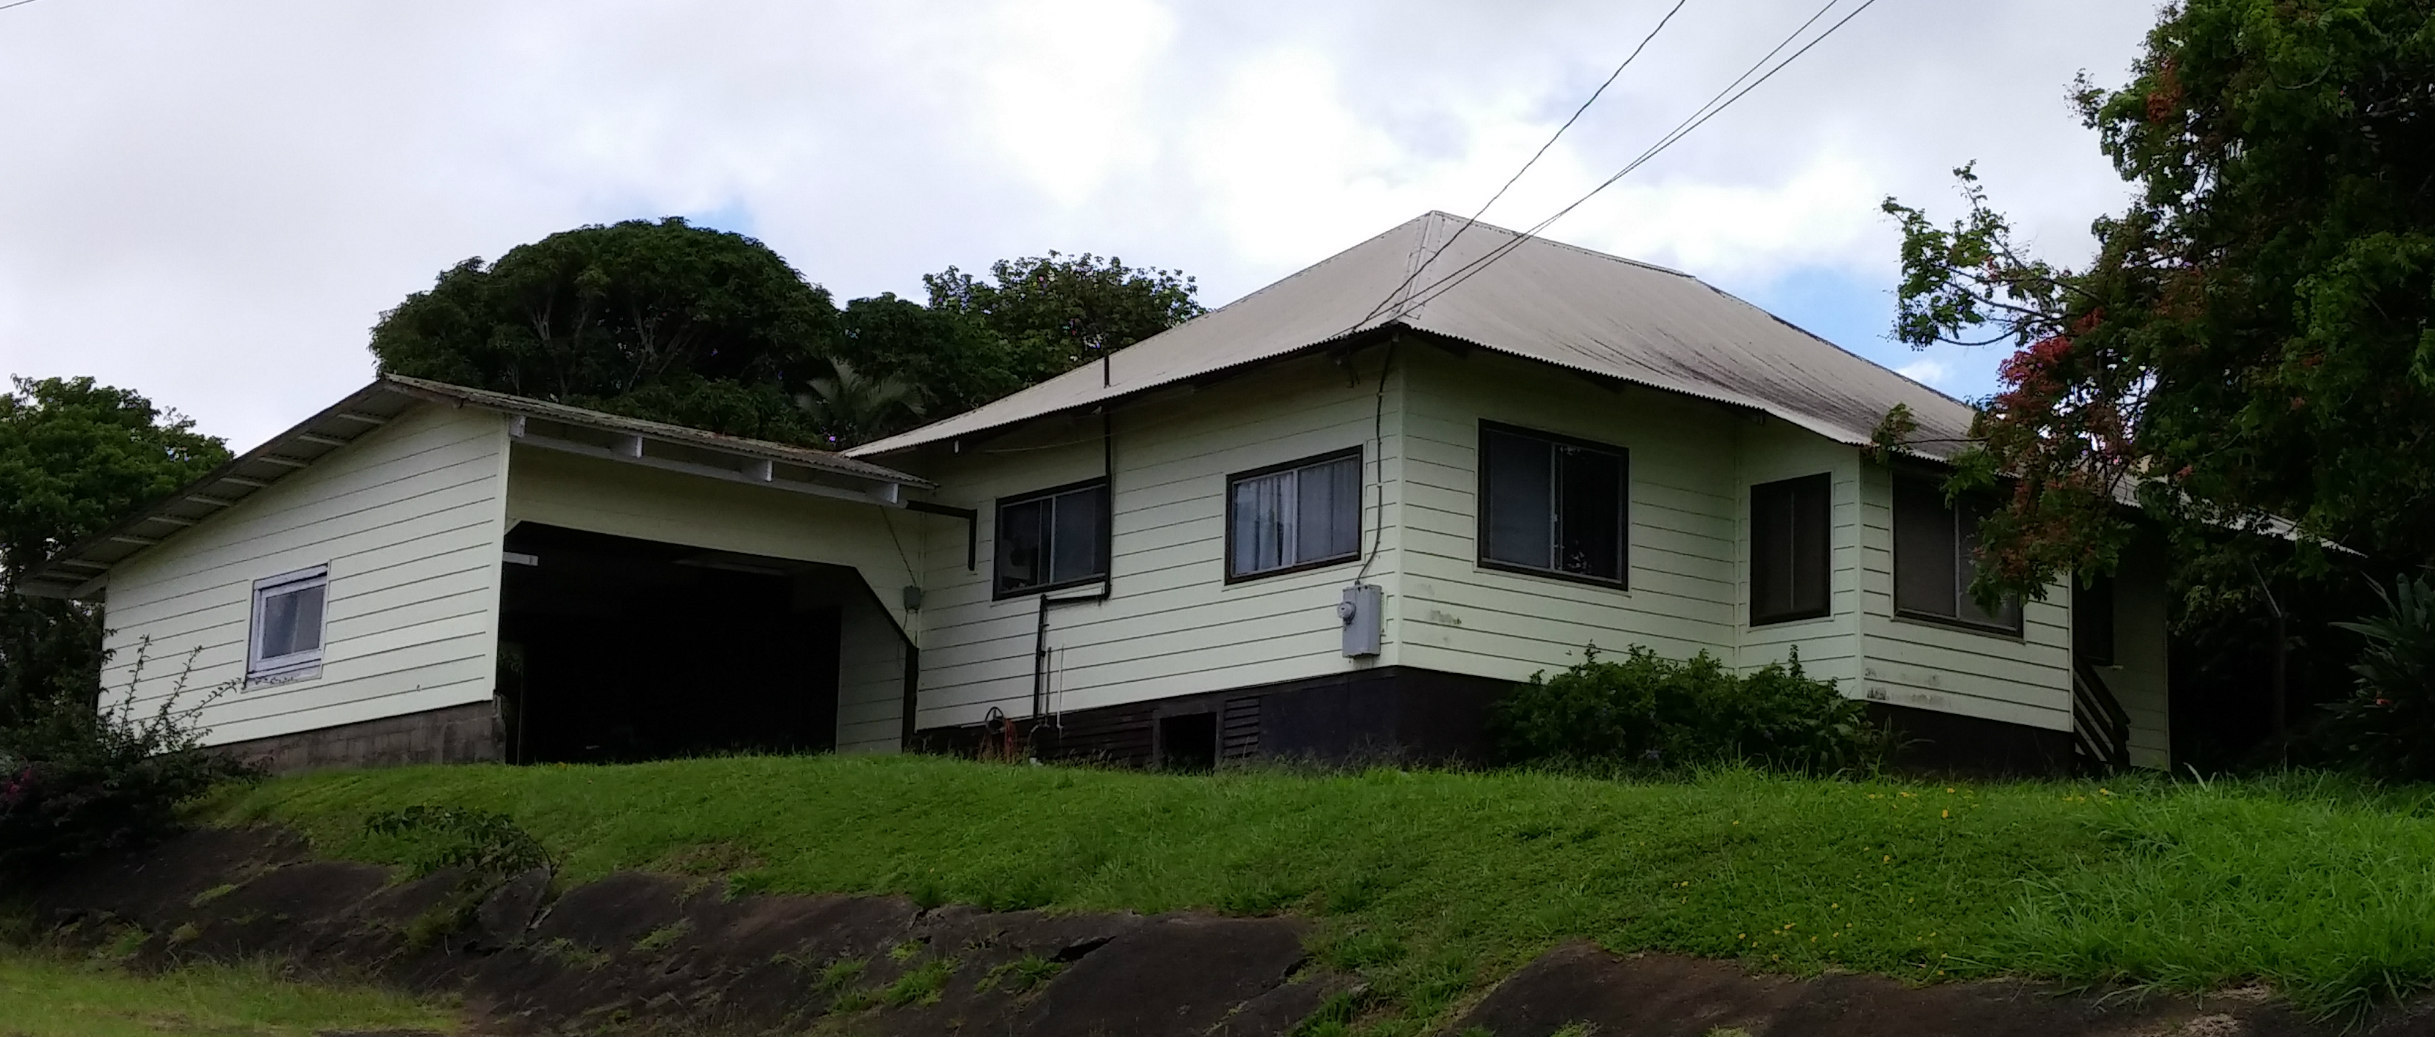 the 5 least expensive homes sold in north kohala in 201